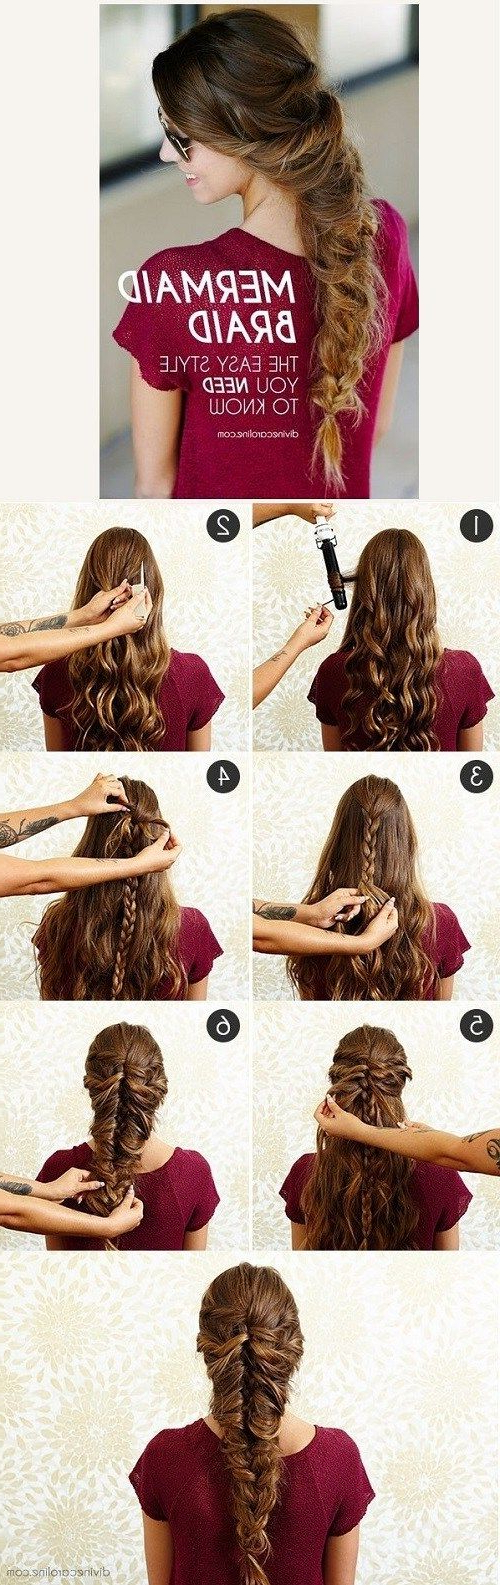 Most Current Twisted Mermaid Braid Hairstyles For 13 Stepstep Hair Tutorials To Style A Mermaid Braid (View 20 of 20)